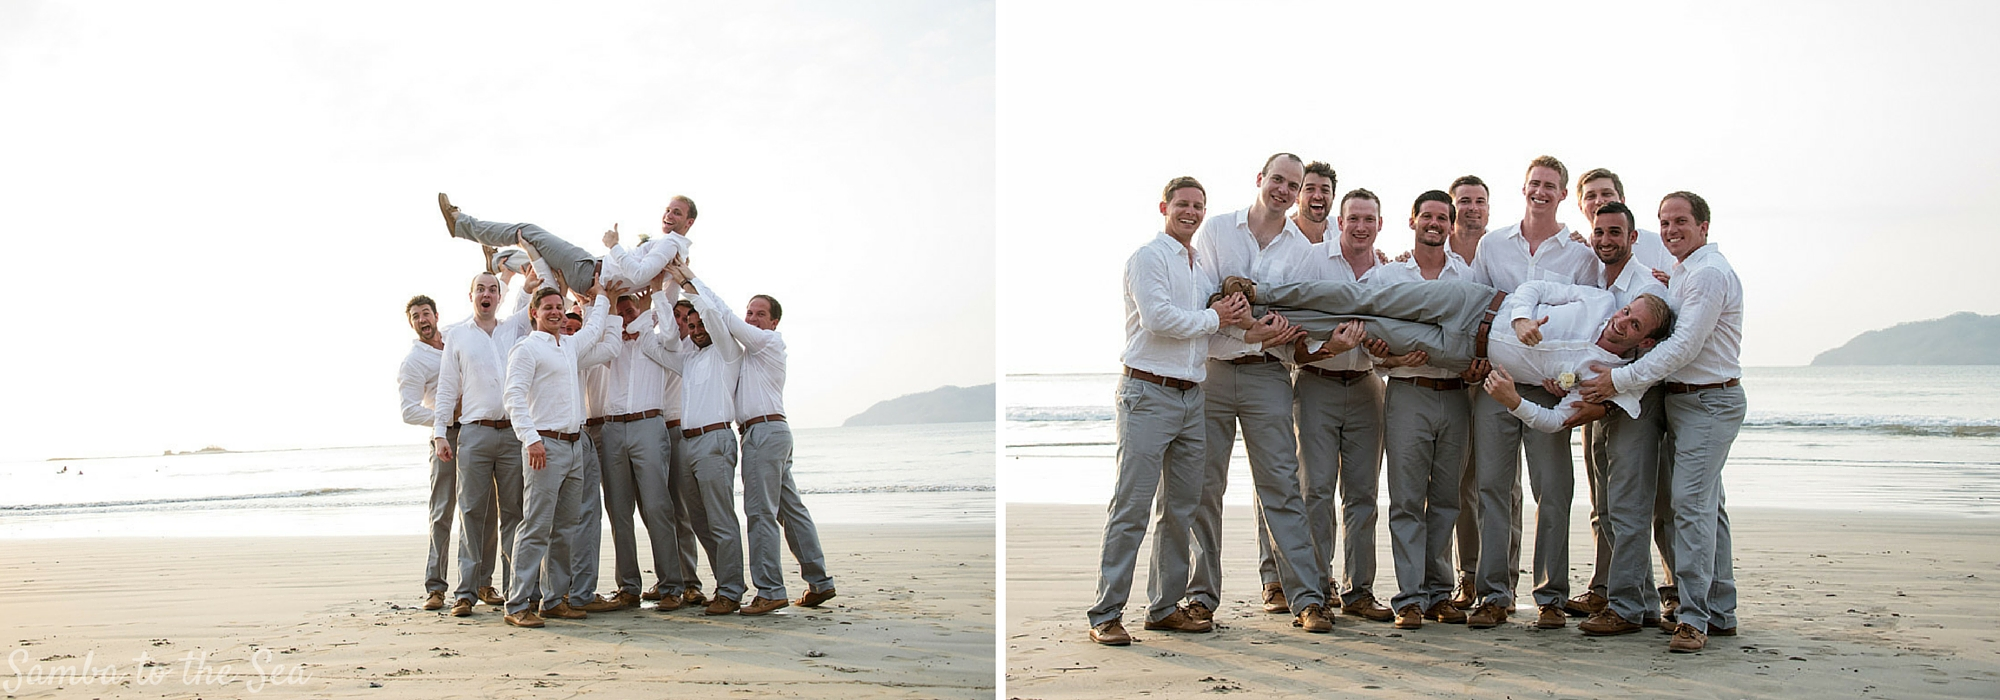 Groomsmen and groom fooling around on the beach during destination wedding in Tamarindo, Costa Rica. Photographed by Kristen M. Brown, Samba to the Sea Photography.